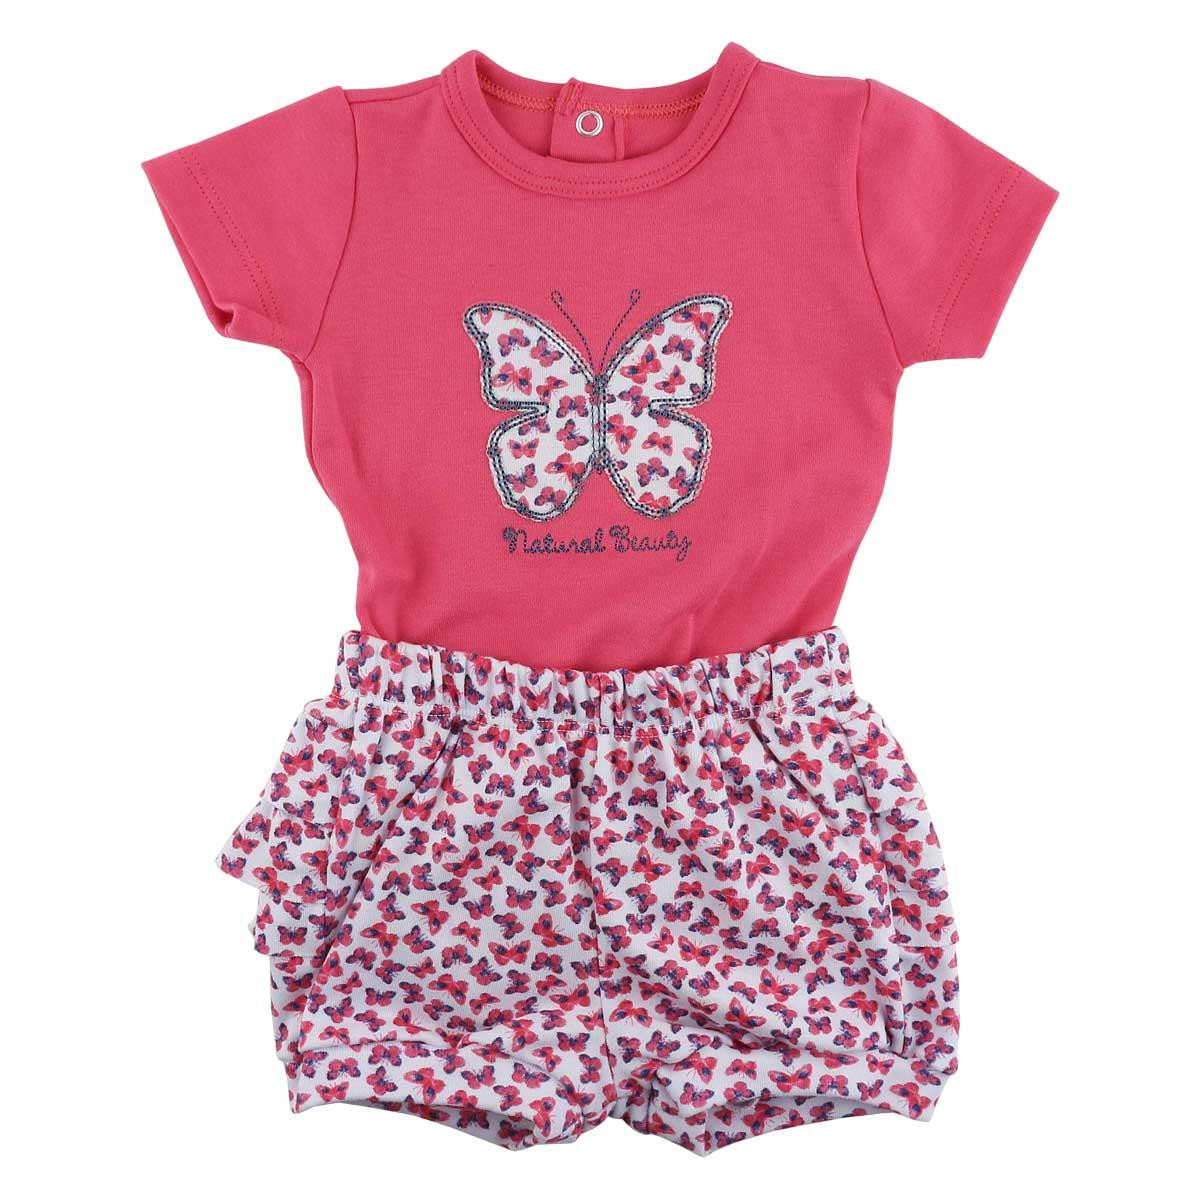 CONJUNTO PARA BEBÊ NEUTRAL BEAUTY MINI & KIDS